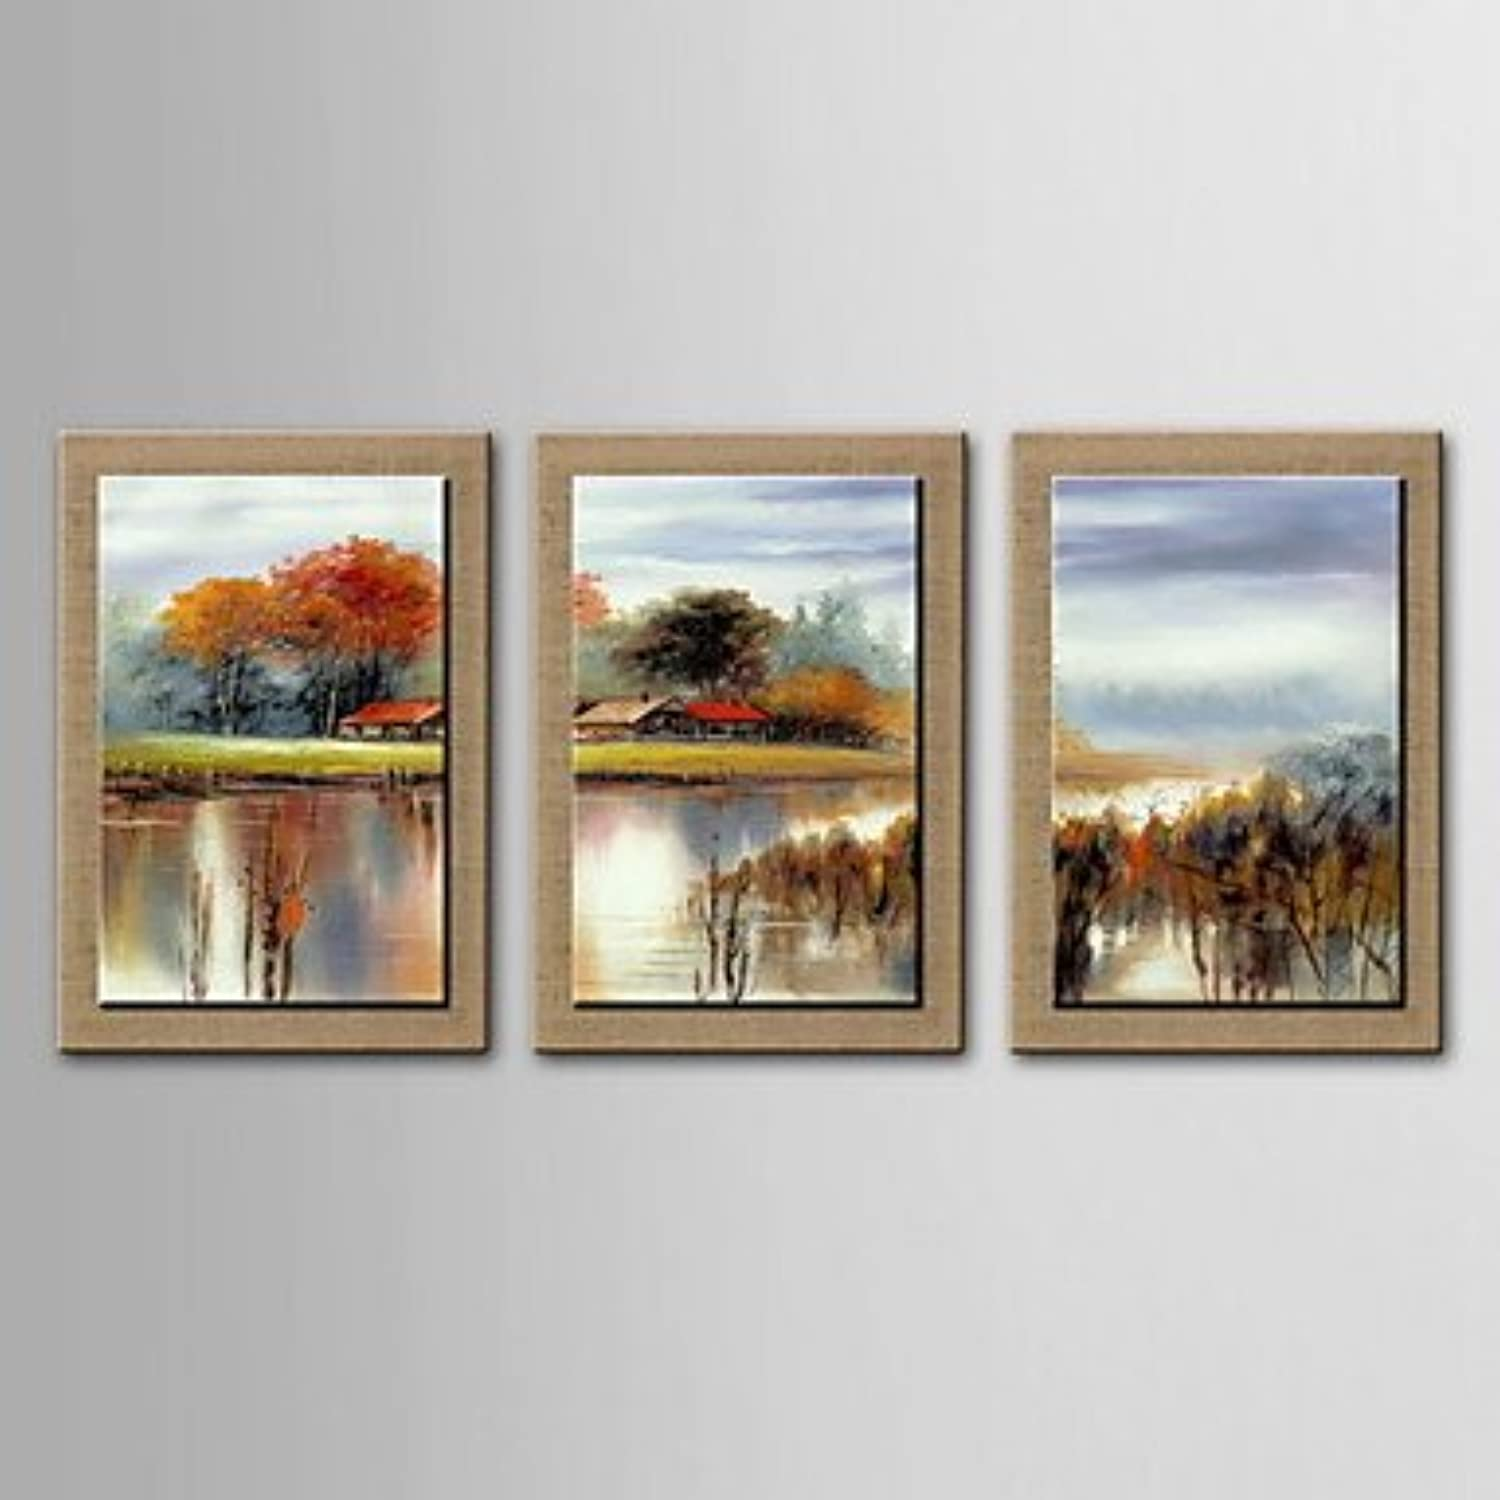 Xuanku Oil Painting Decoration Abstract Scenery Hand Painted Canvas with Stretched Framed  Set of 3